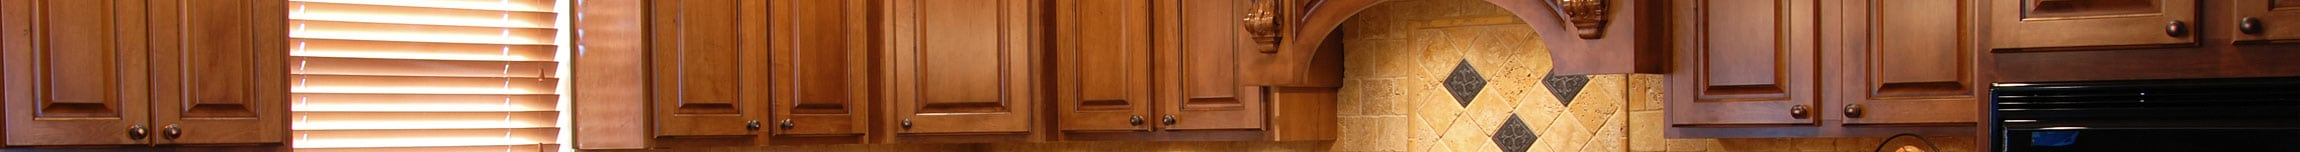 Kitchen cabinets custom made